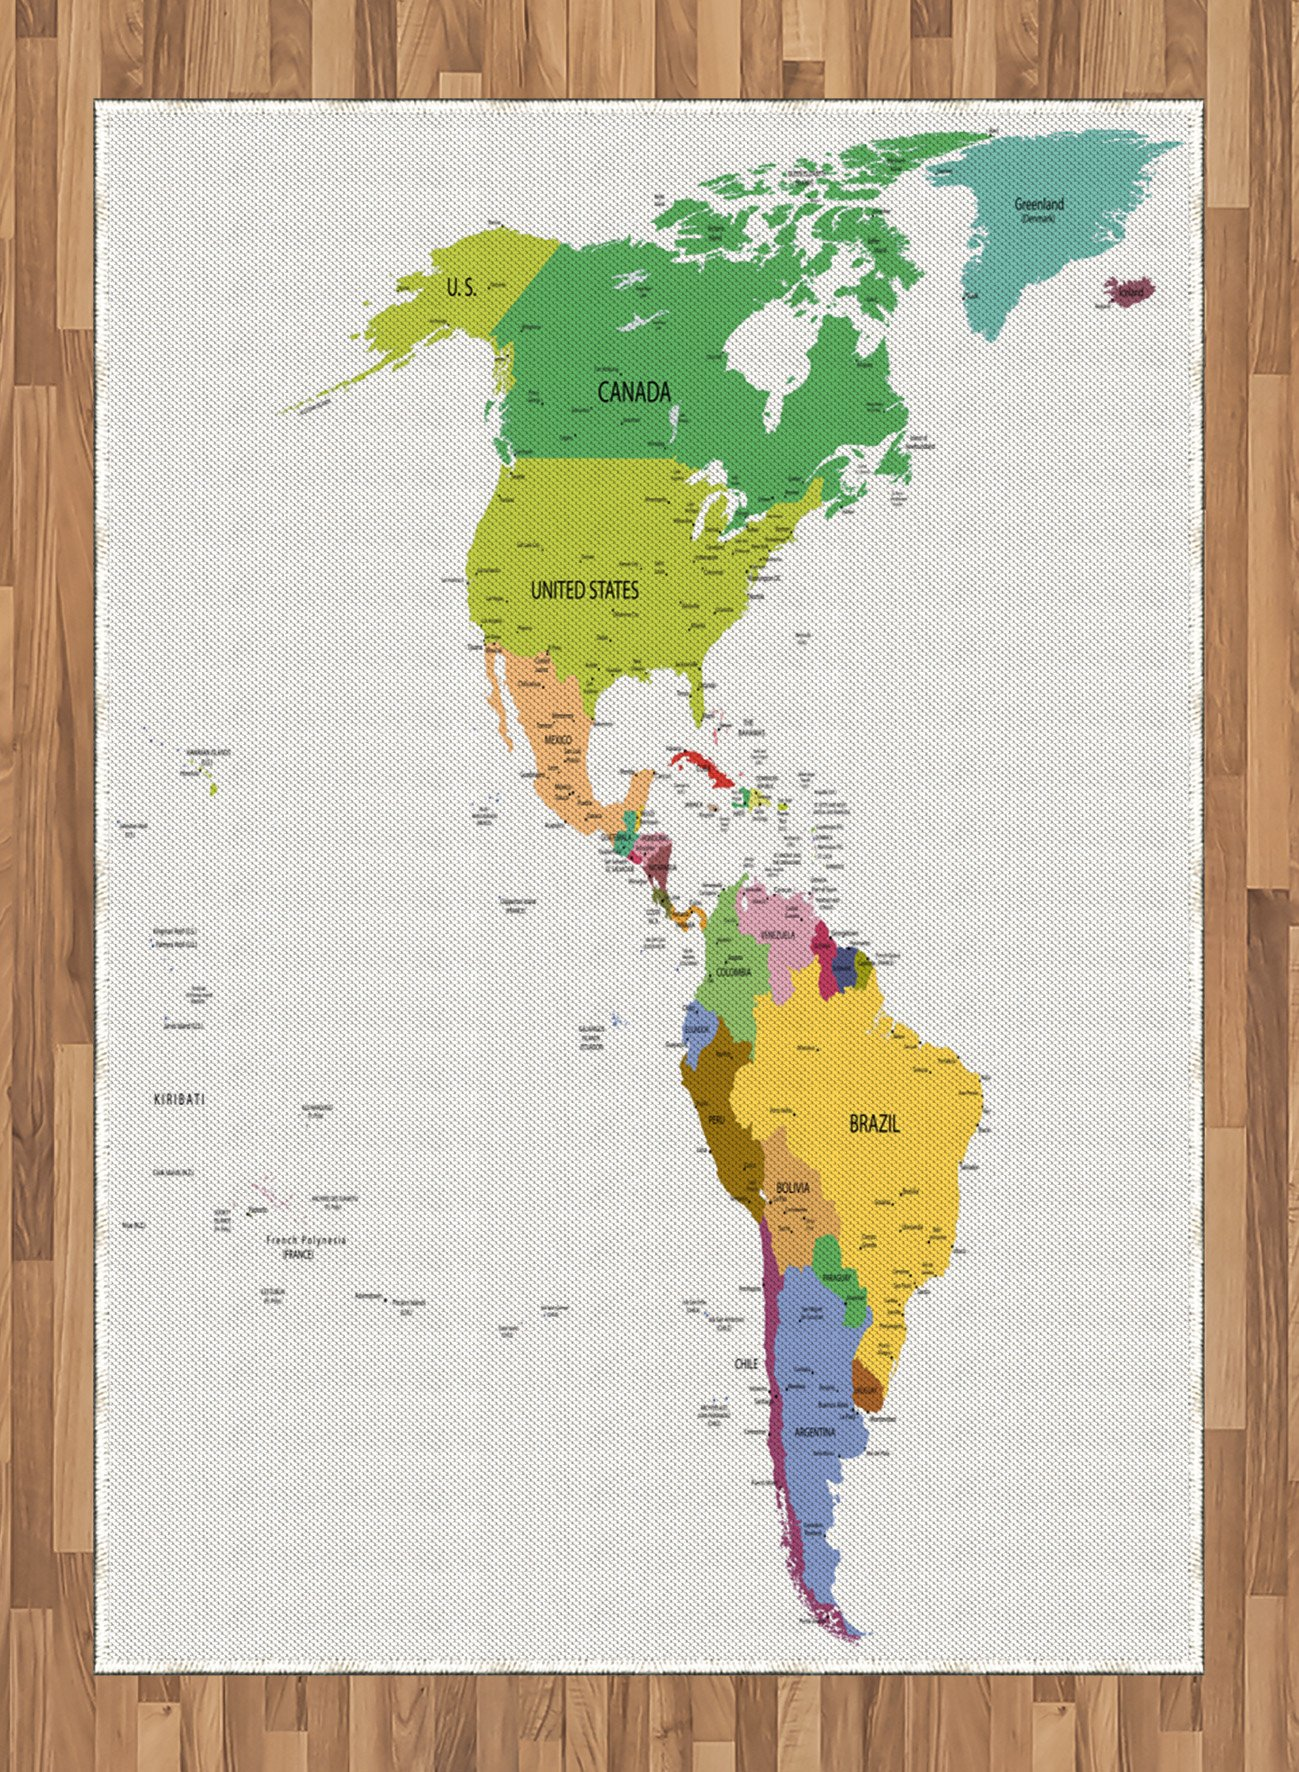 Map Area Rug by Ambesonne, Map of South and North America with Countries Capitals and Major Cities Colorful Design, Flat Woven Accent Rug for Living Room Bedroom Dining Room, 5.2 x 7.5 FT, Multicolor by Ambesonne